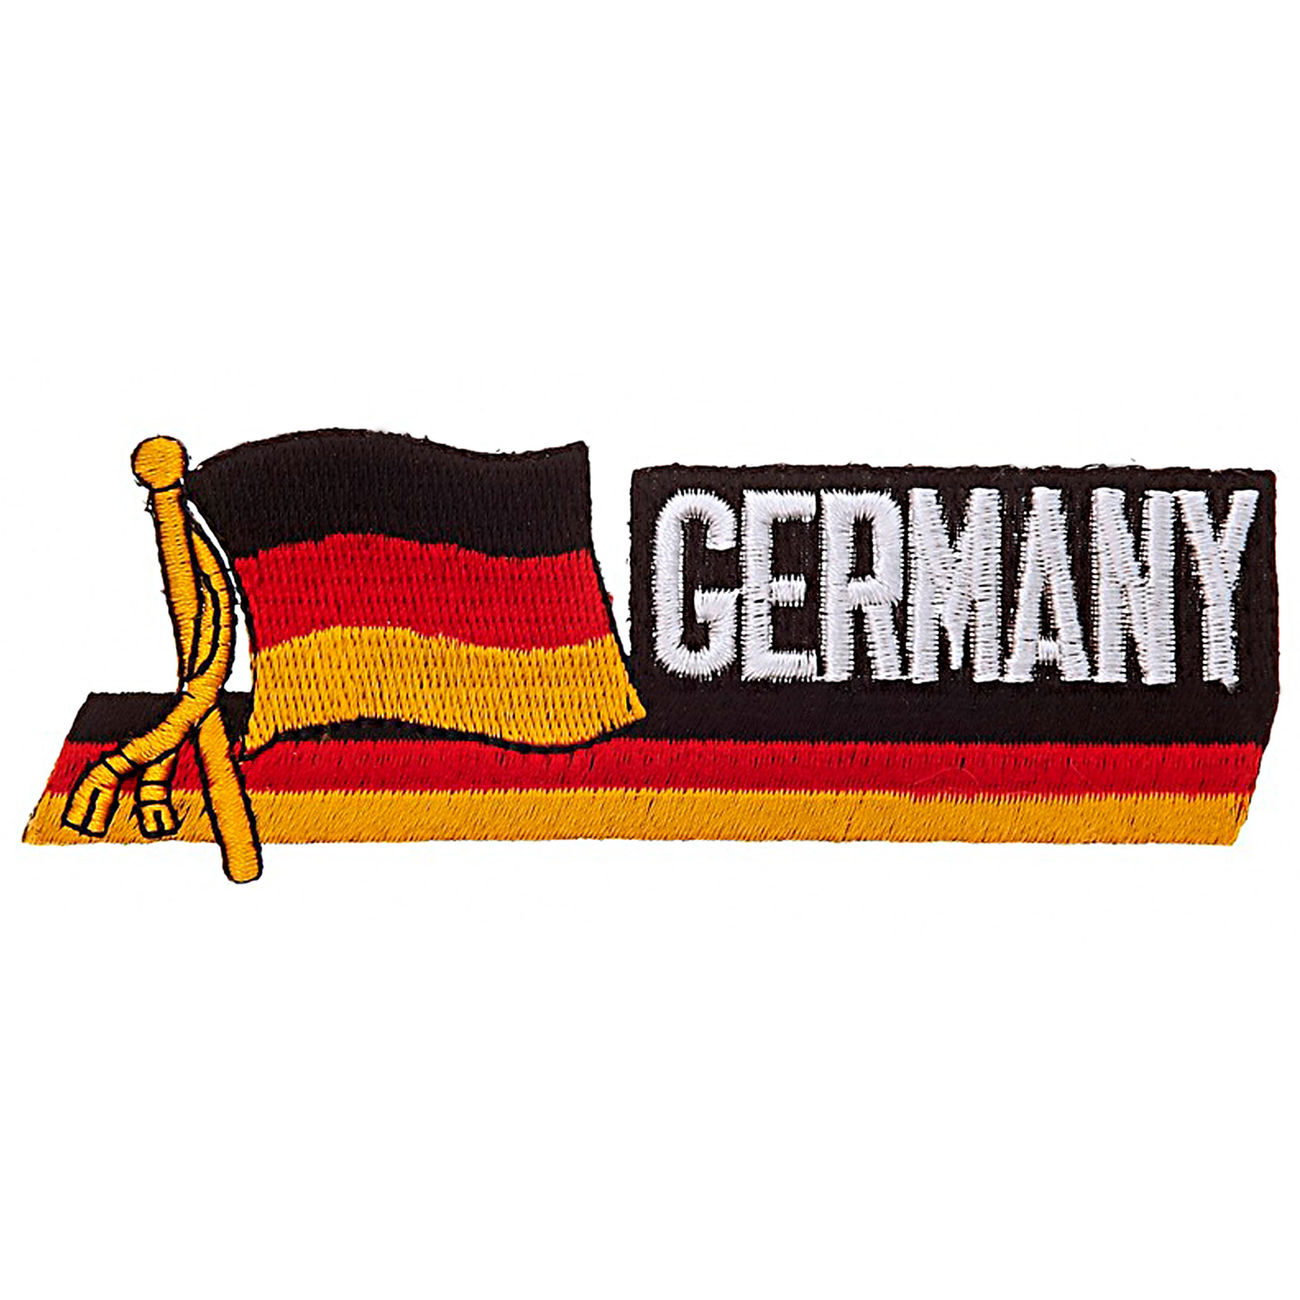 Textil Patch Waving Flag Germany mit Bügelfläche 0